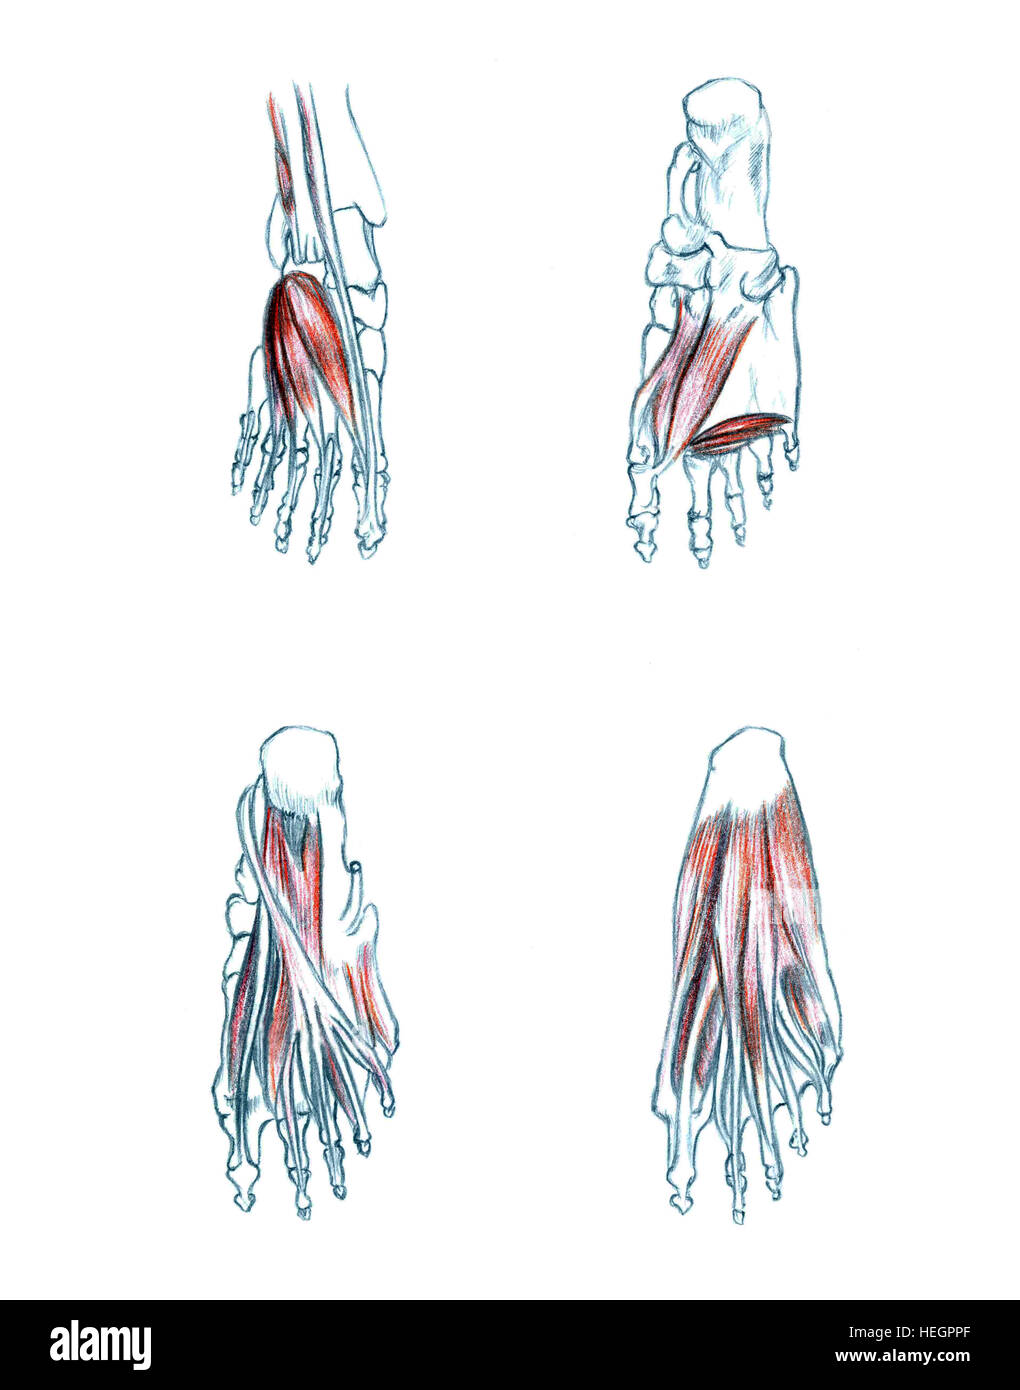 Muscles Of Foot Hand Drawn Medical Illustration Drawing With Stock Photo Alamy